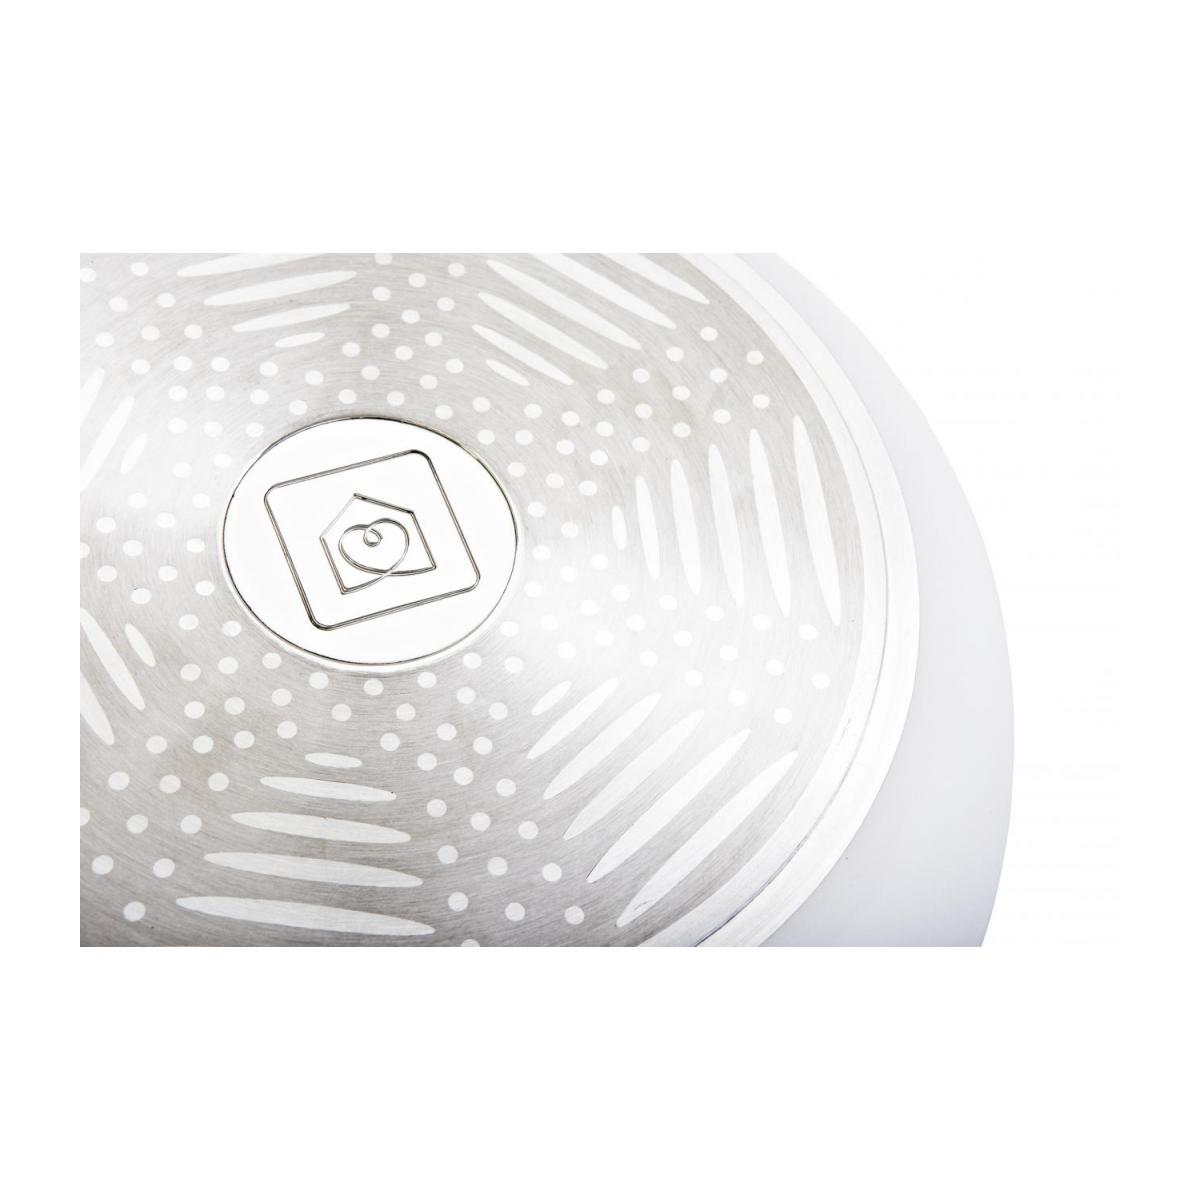 White aluminium pan 28 cm with inner coating in ceramic n°4